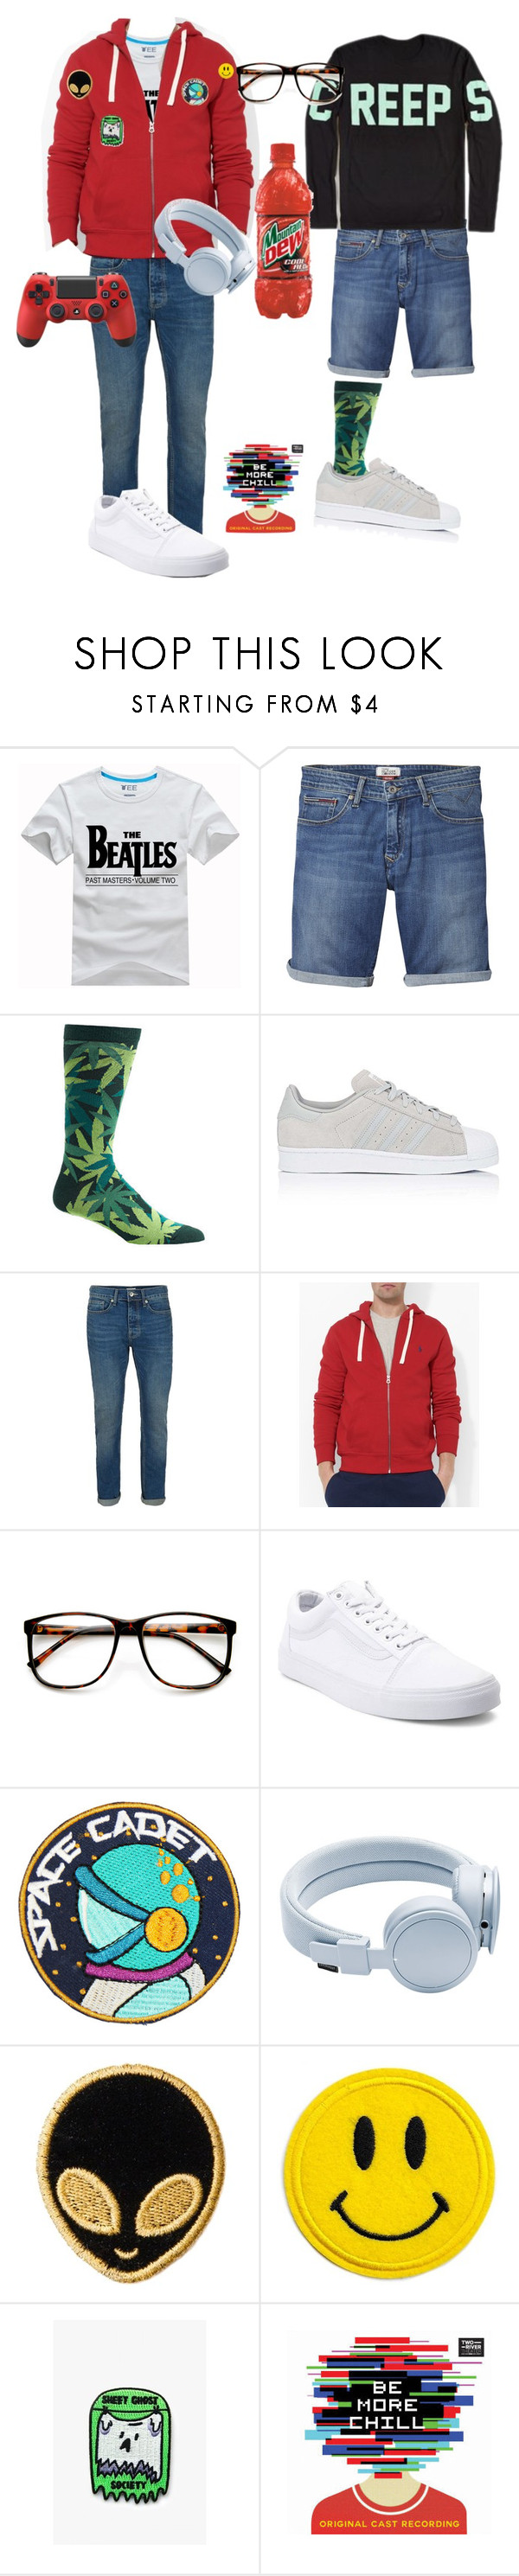 """""""Untitled #441"""" by totaltrashmammal ❤ liked on Polyvore featuring Tommy Hilfiger, Ozone, adidas, Topman, Polo Ralph Lauren, ZeroUV, Vans, Urbanears, Stoney Clover Lane and Mokuyobi"""